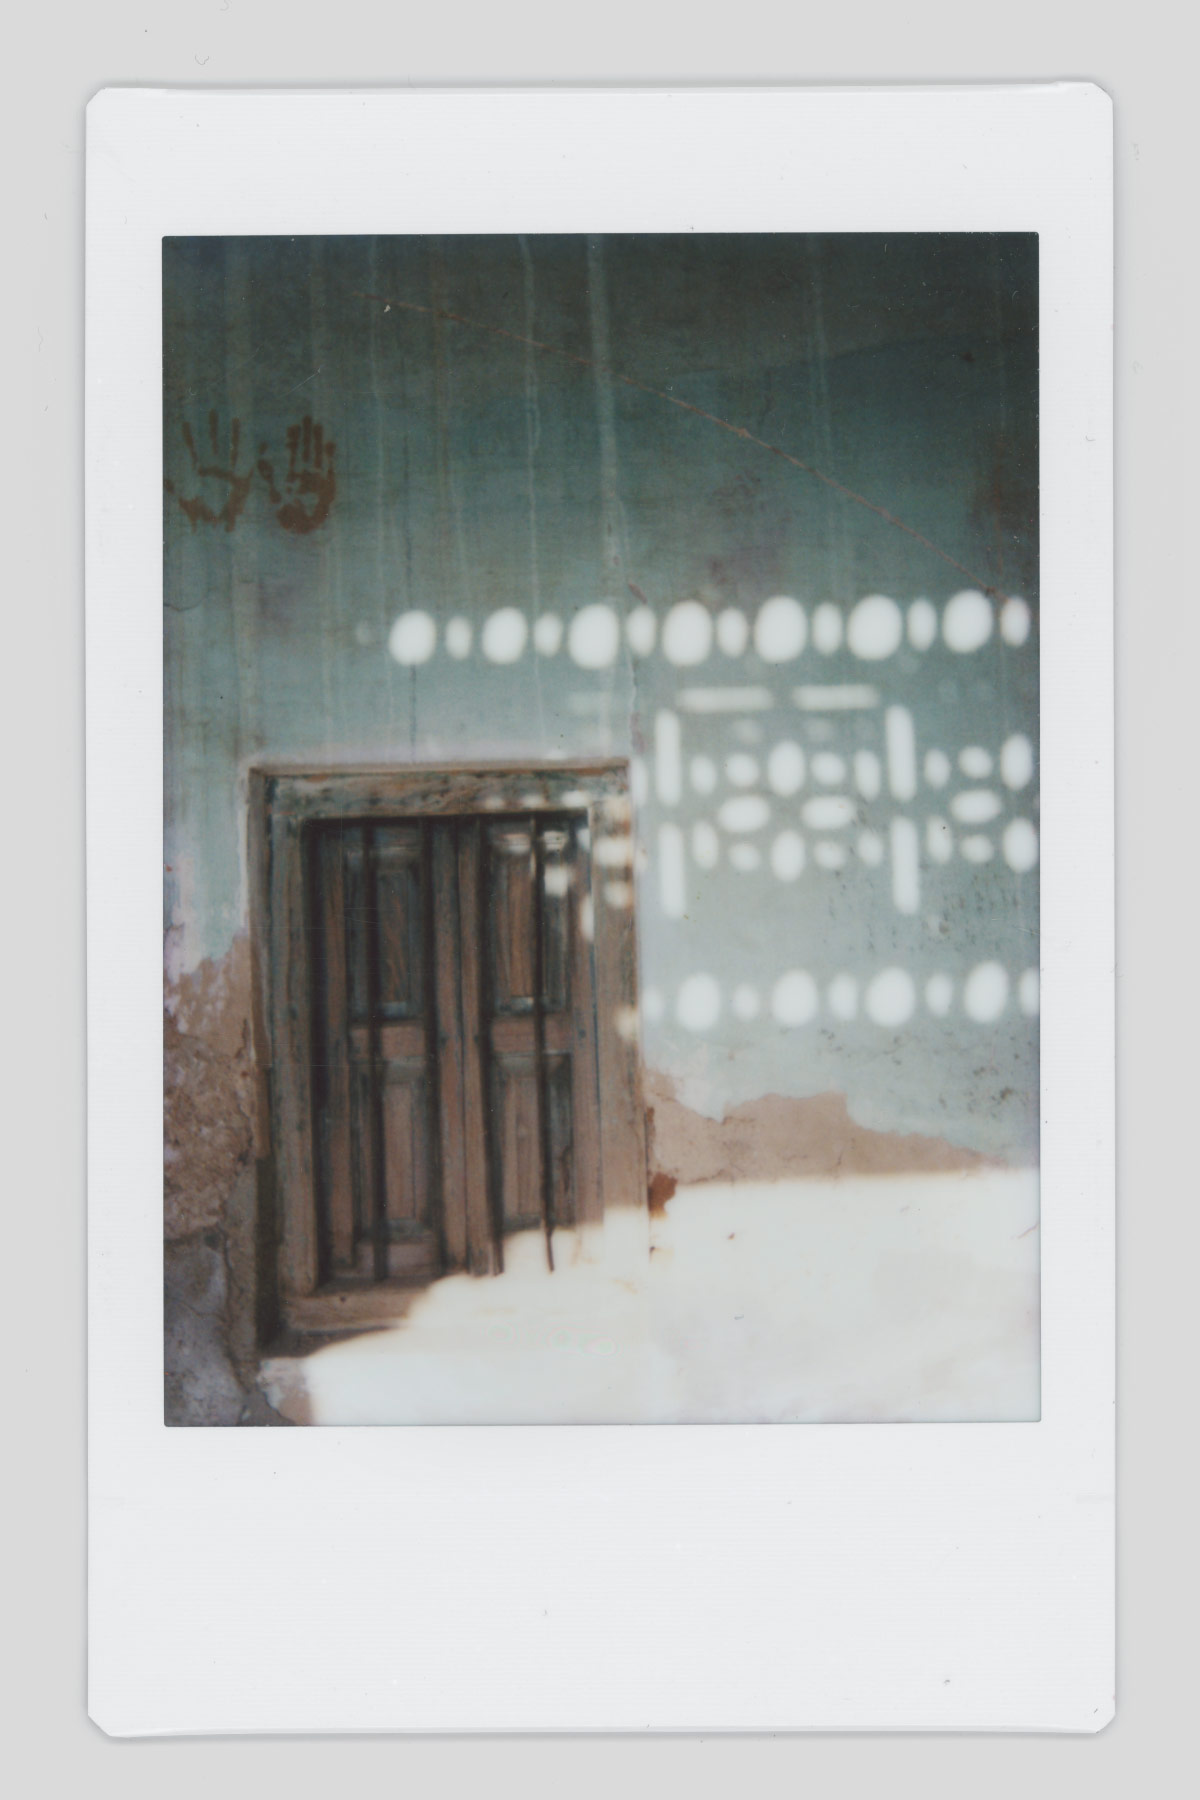 giulio_favotto_india_details_polaroid_instax_03